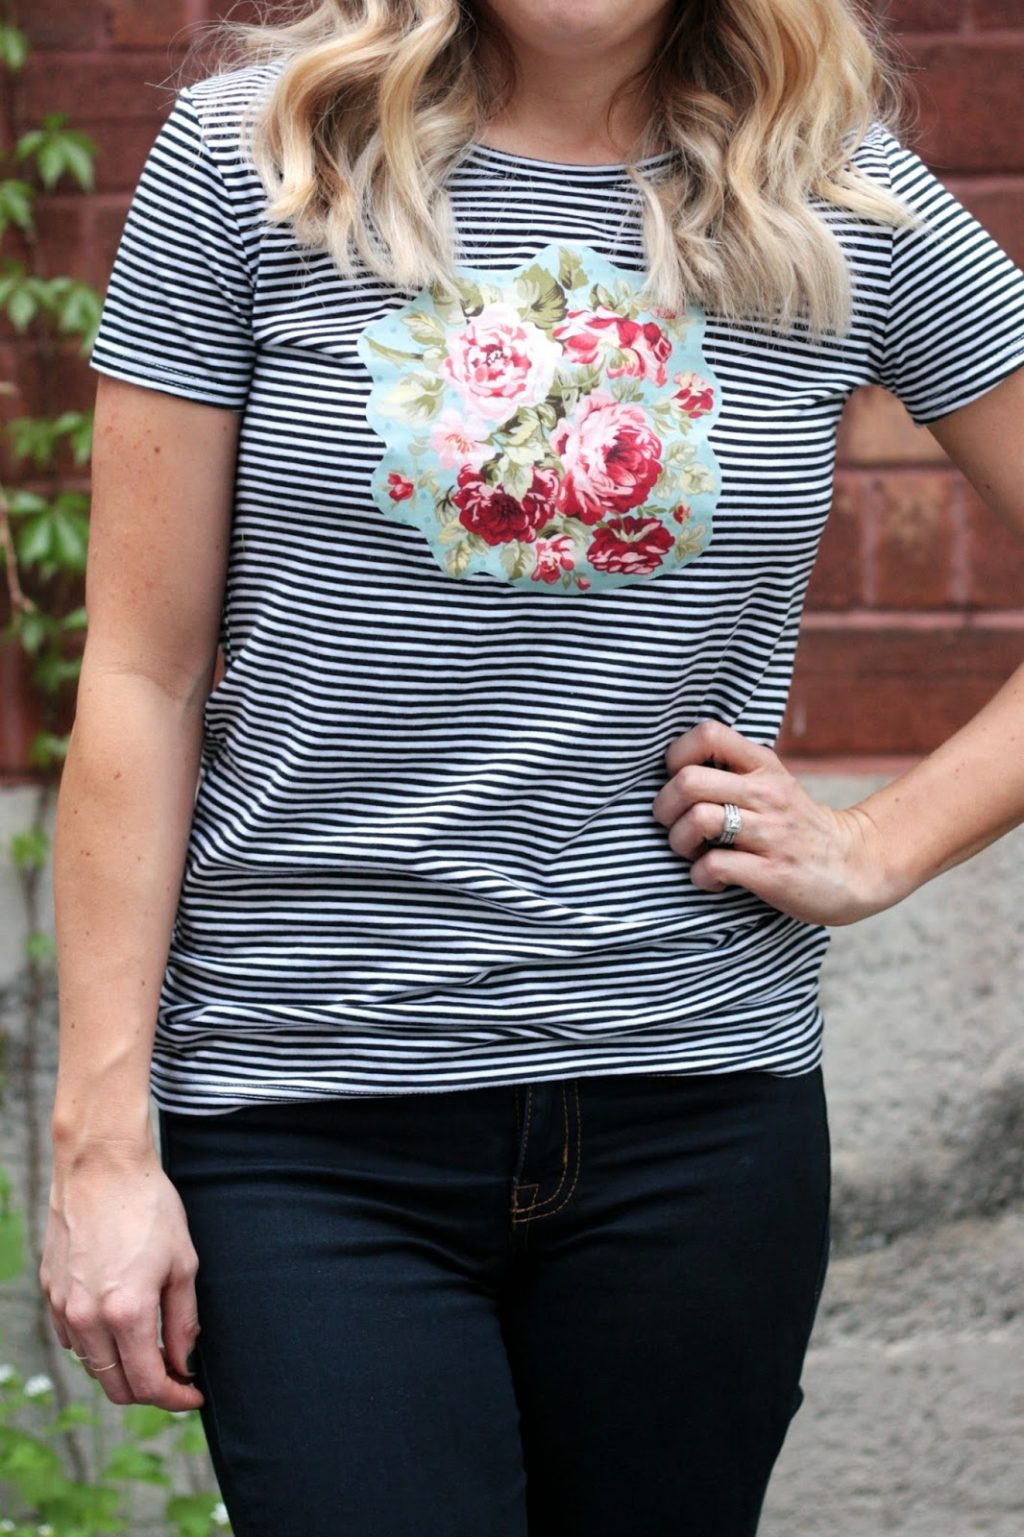 https://prettylifegirls.com/2015/06/plg-diy-no-sew-floral-stripes-tee.html